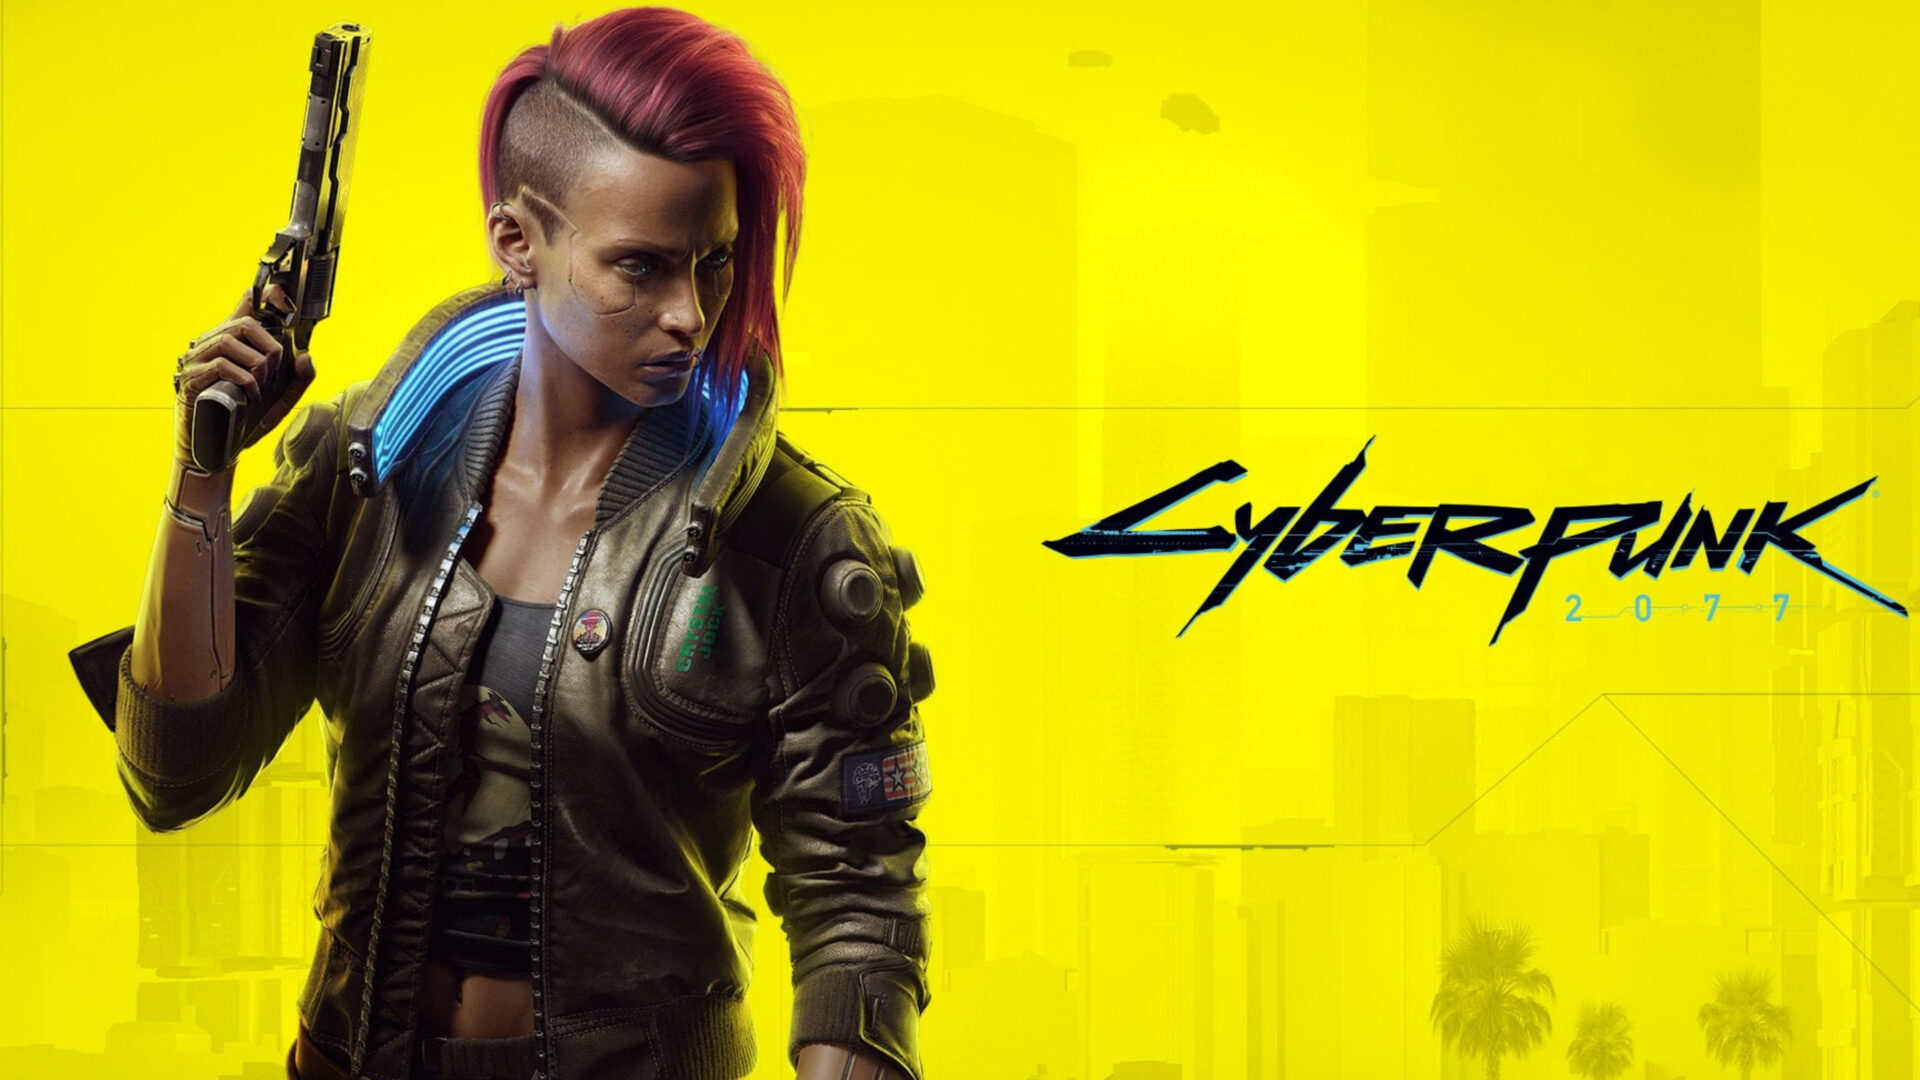 A yellow wallpaper with futuristic text that says Cyberpunk. A cyborg looking woman is looking off to the side, holding a futuristic pistol and wearing combat clothing, while also rocking an awesome half-shaved pink hairstyle. She is epic. She is the future.